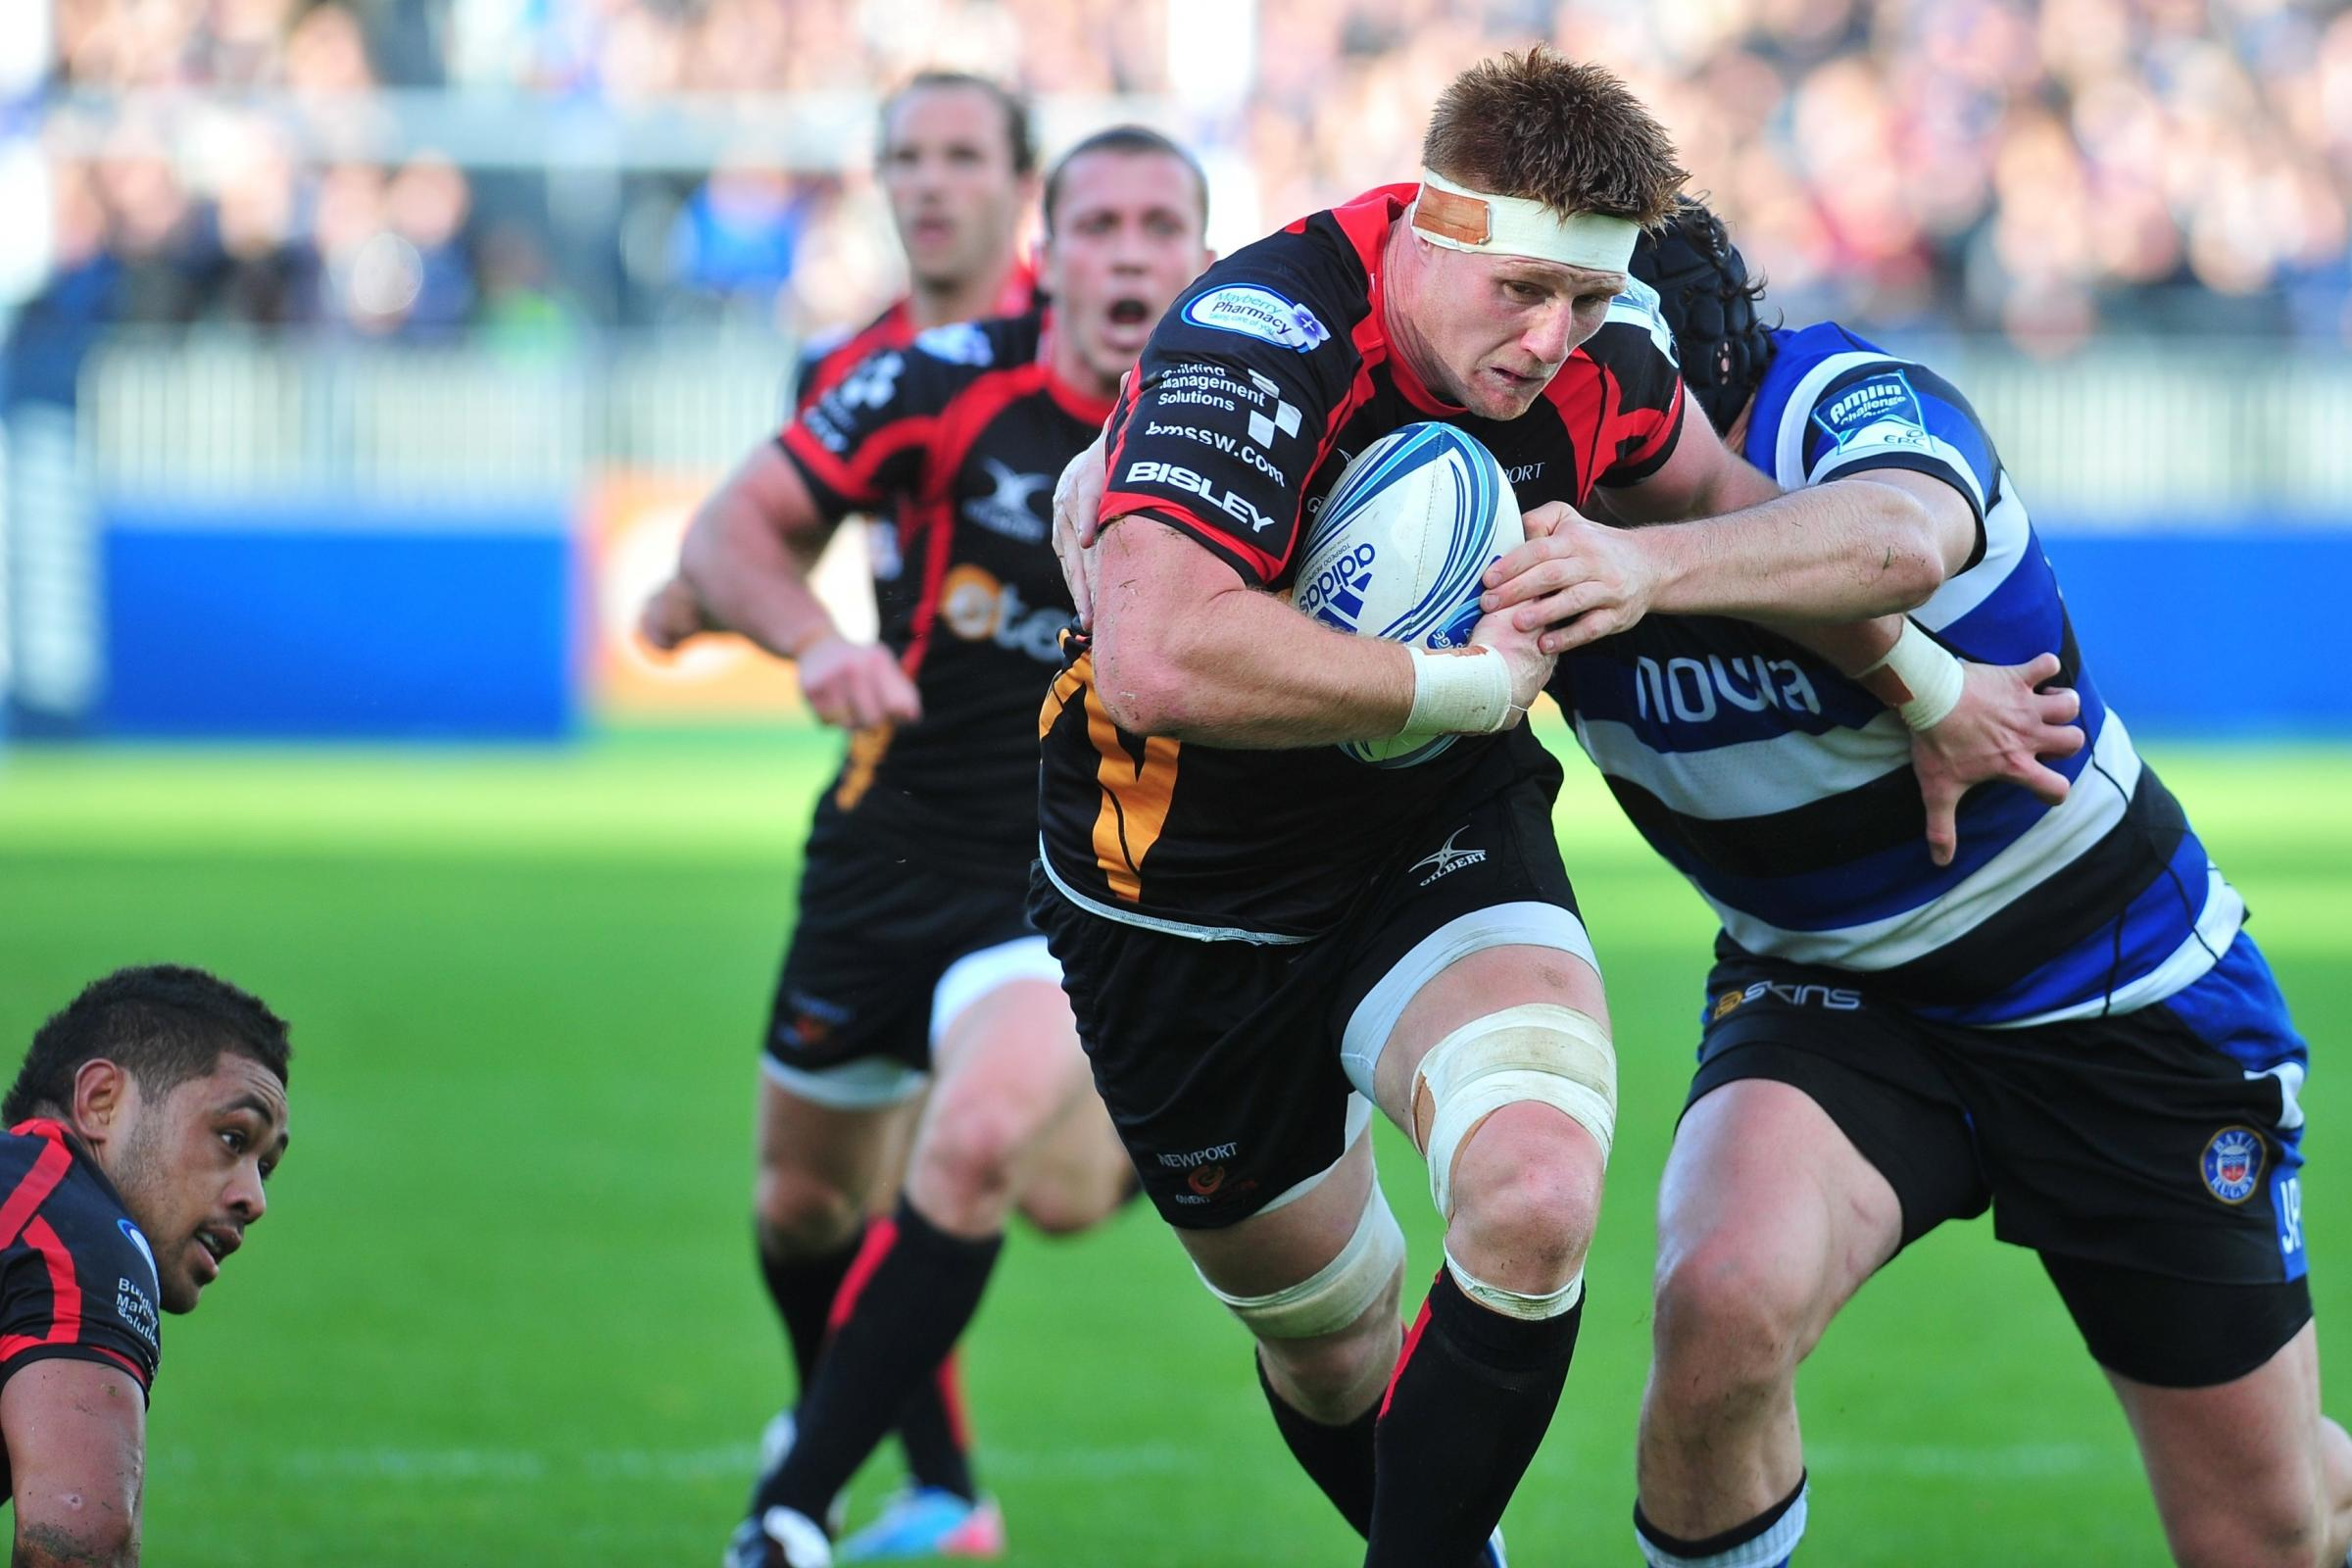 BACK IN ACTION: Dragons skipper Andrew Coombs returns after missing out for Wales in November